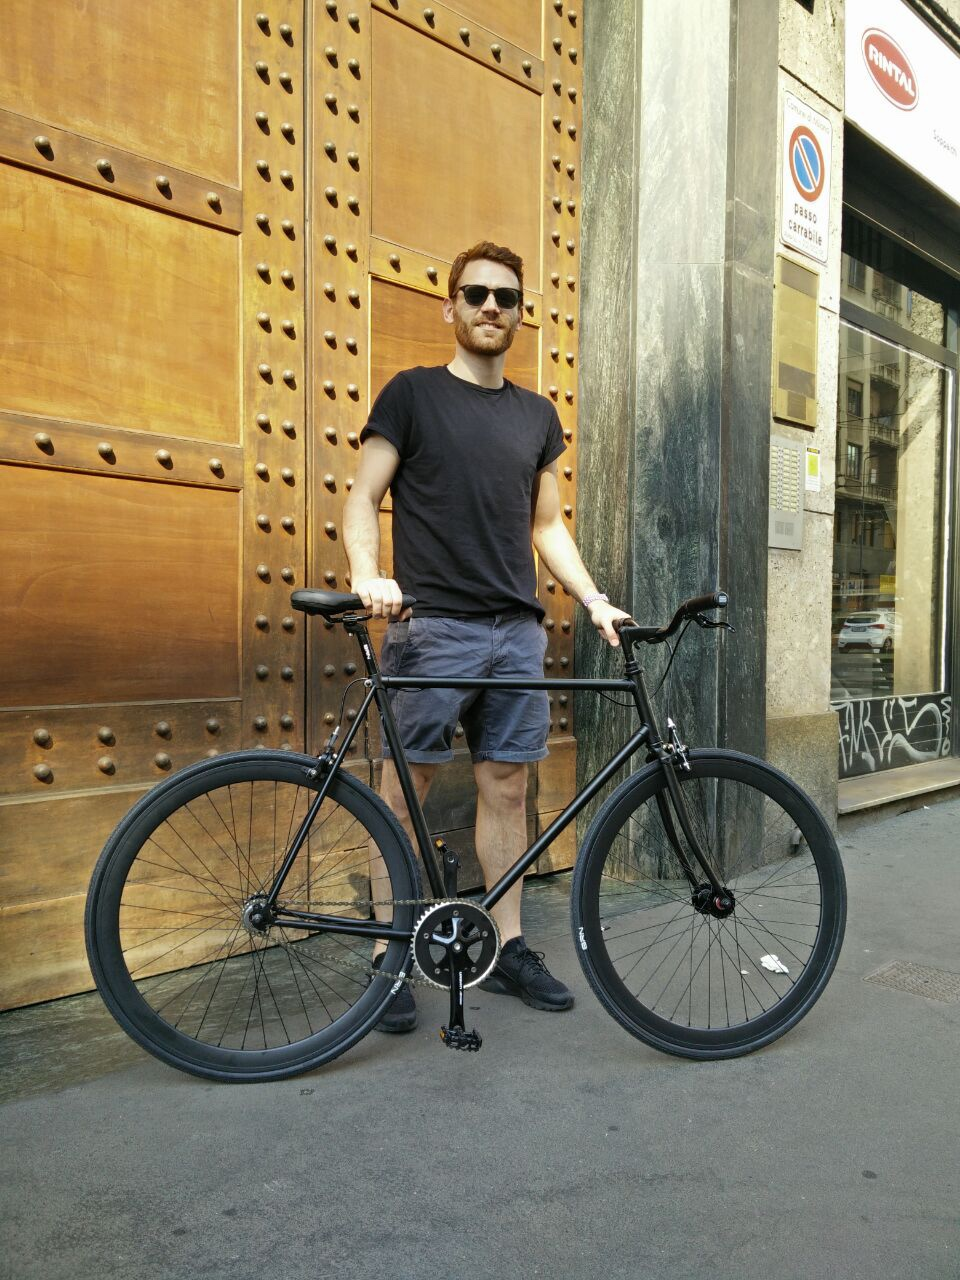 La Ciclistica Milano - La04 fixed gear